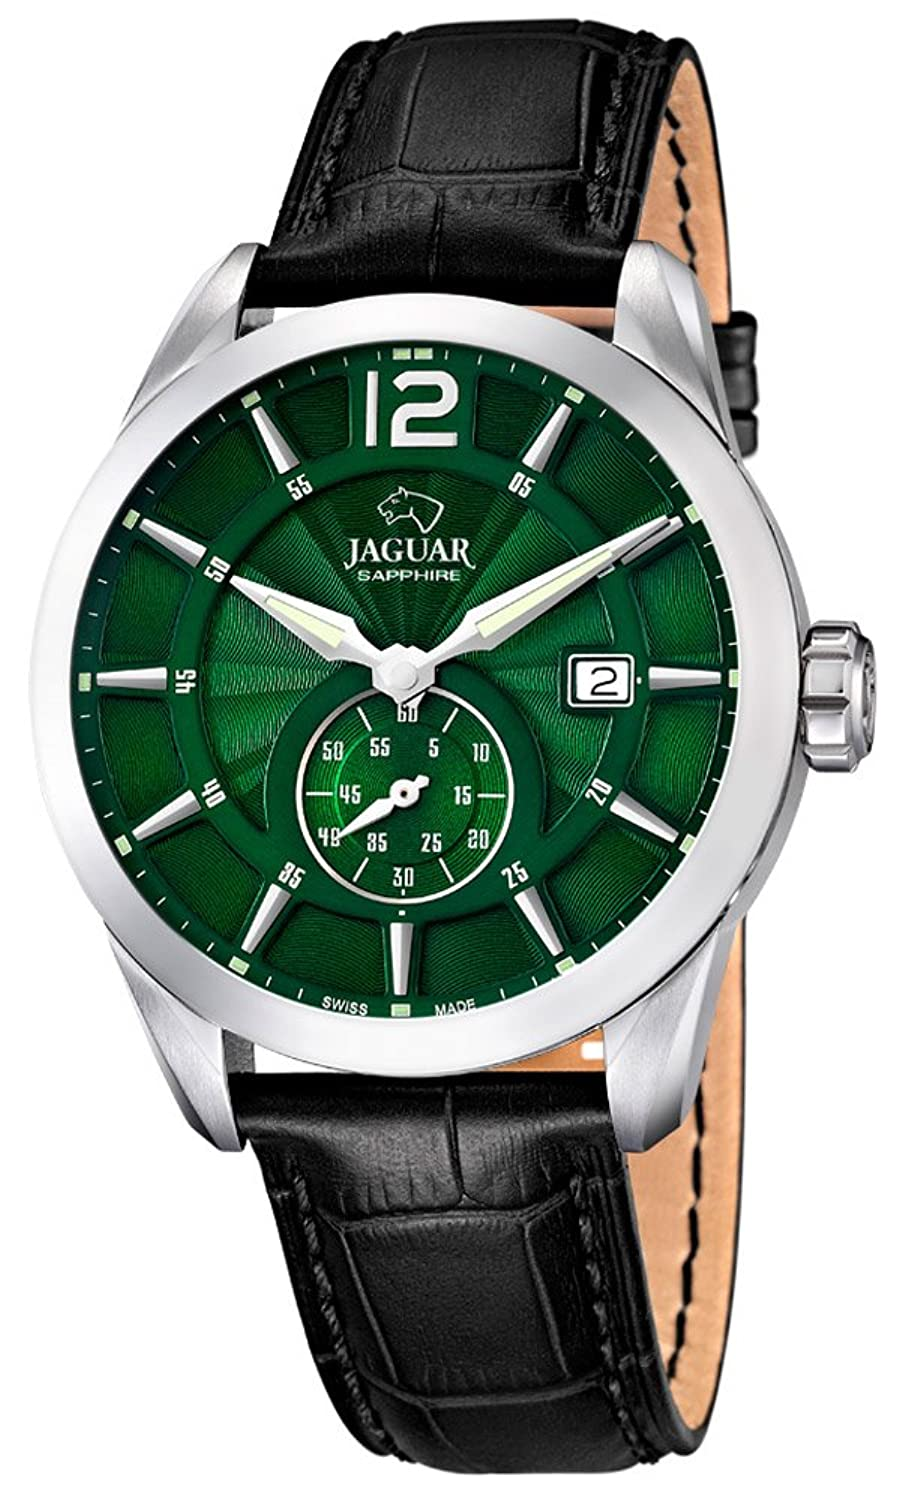 JAGUAR SWISS MADE Herrenuhr Armbanduhr Lederband Analog Quarzuhr J663 - Farbe:grÜn